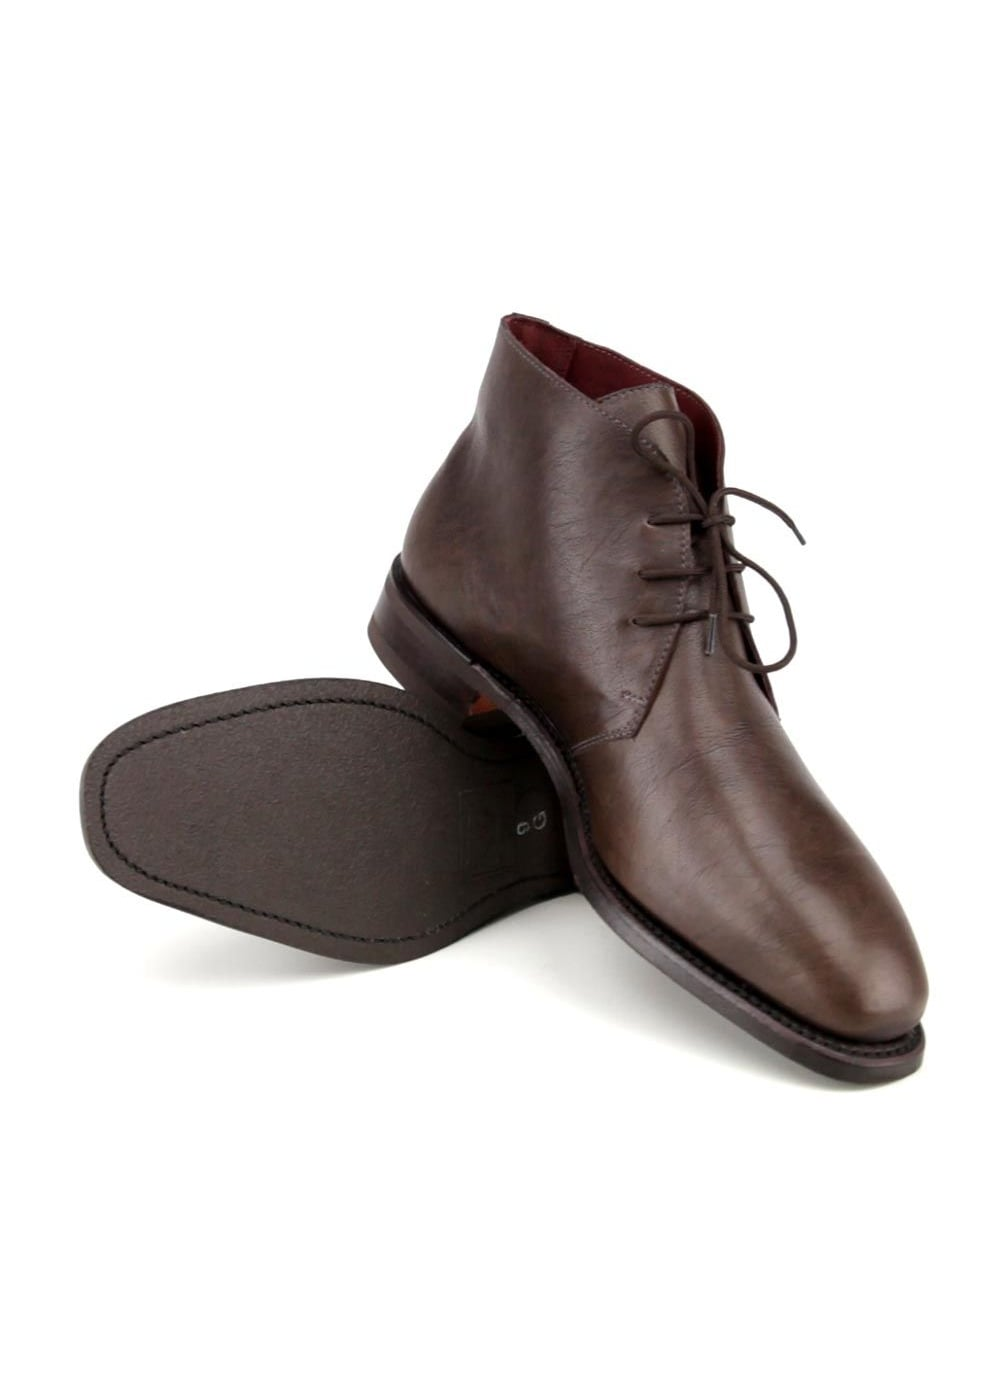 RM Williams Kingsvale Boots Large Image